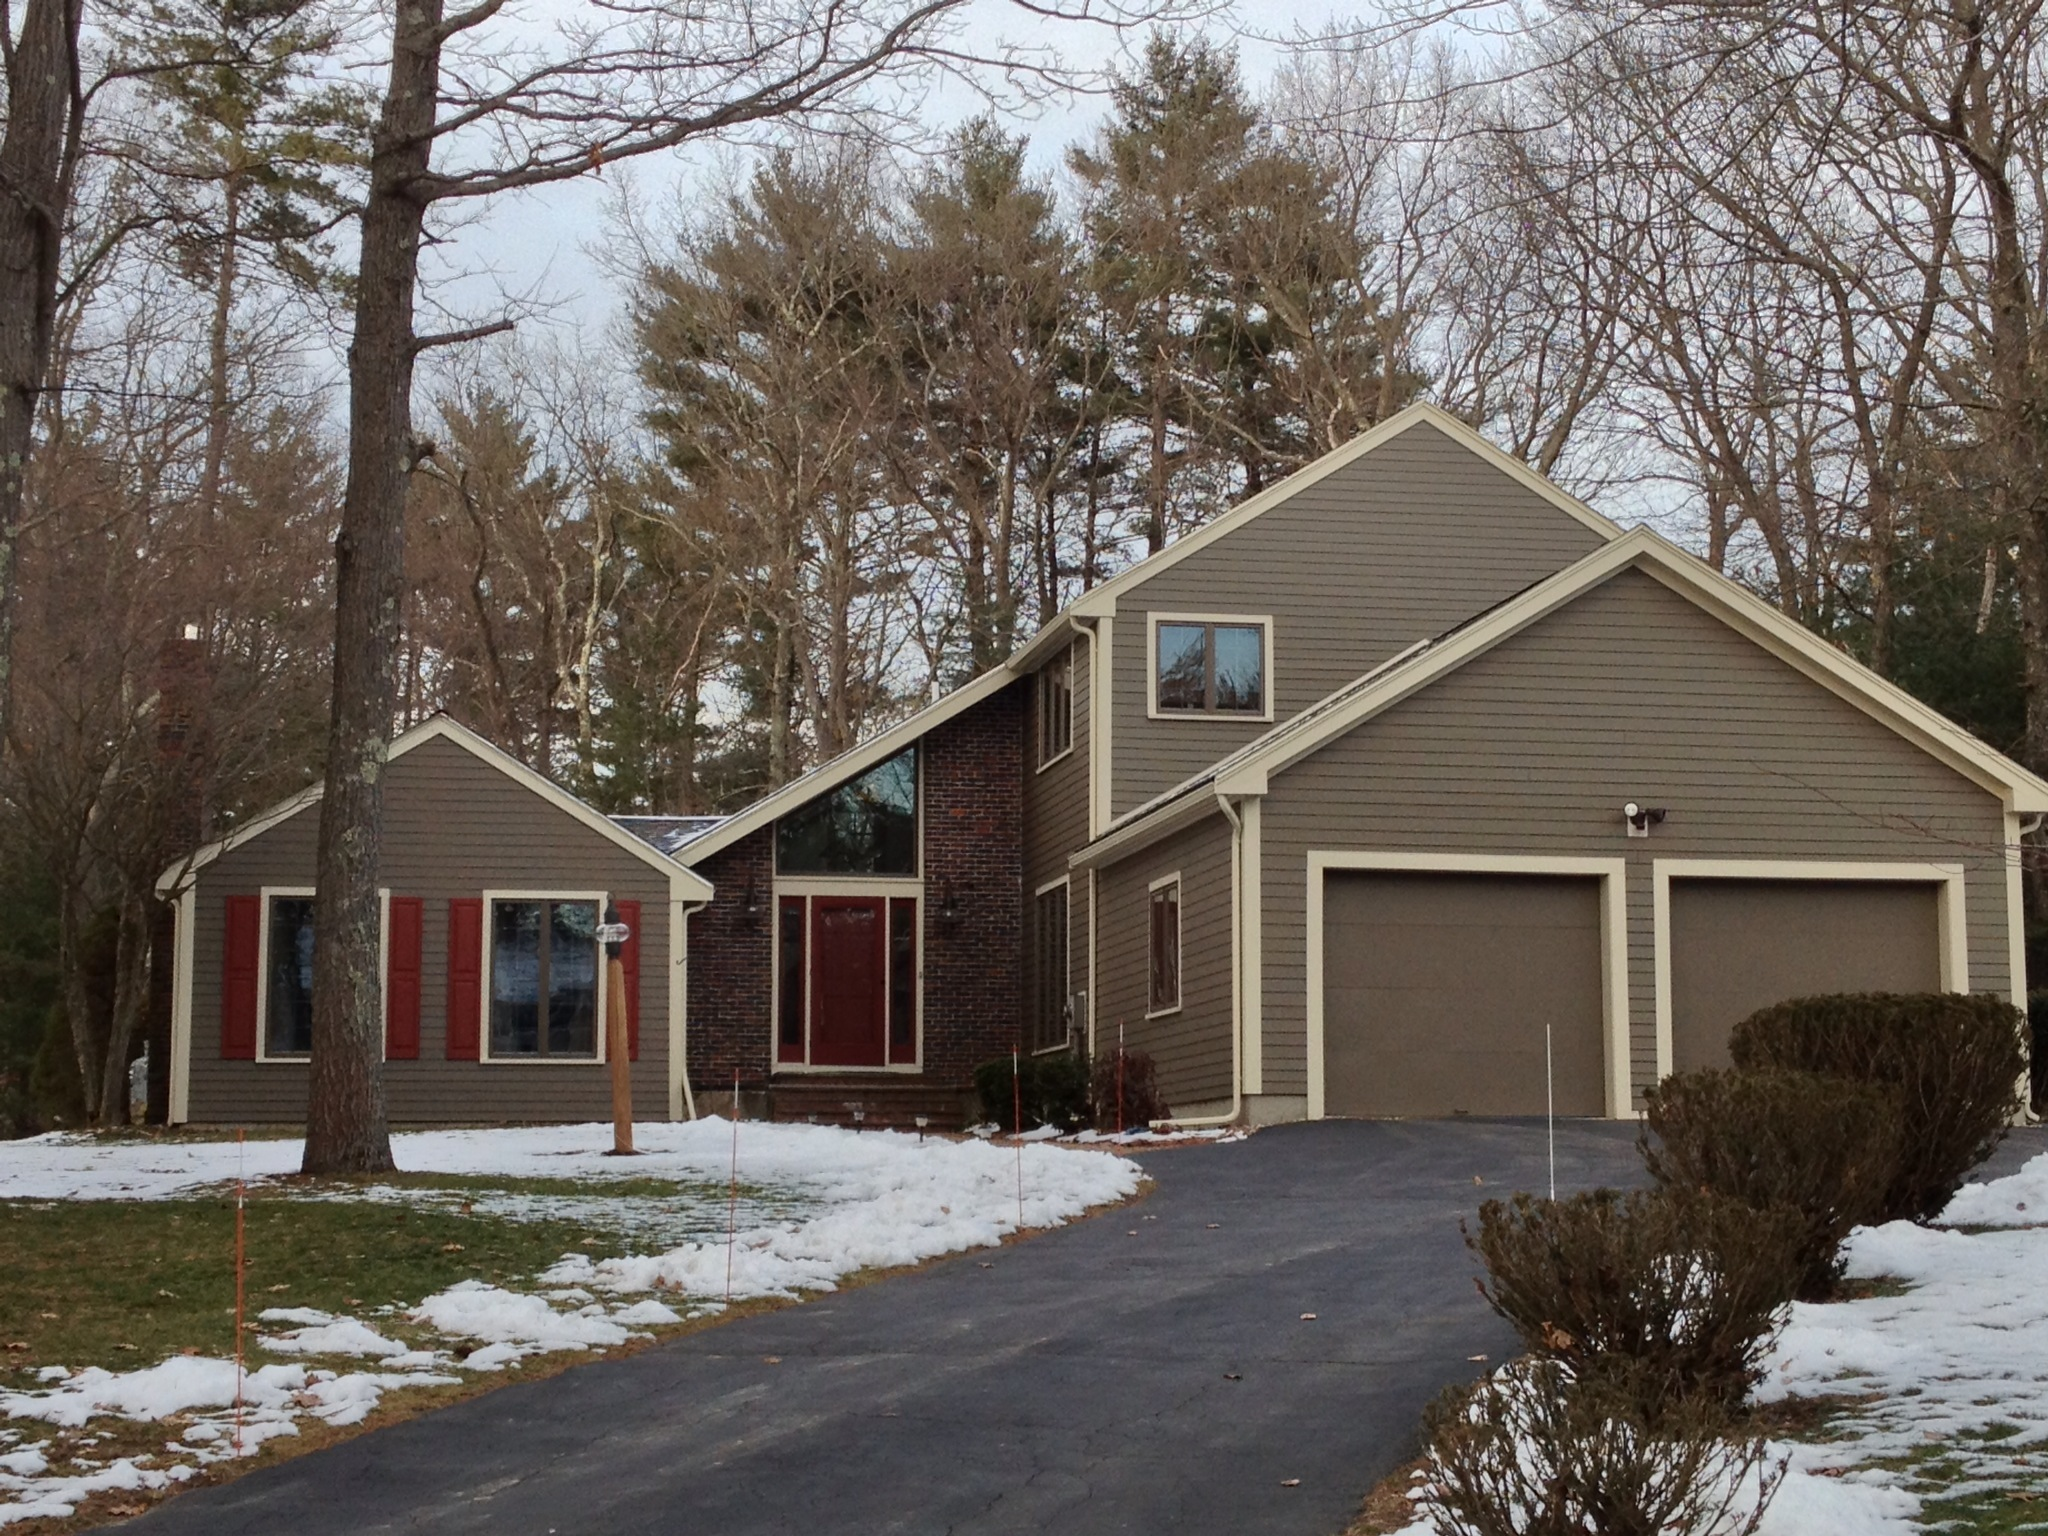 Home Exterior Design Ideas Siding Part - 45: Chic Tan Horizontal Hardie Plank Siding Matched With White Trim Board For Home  Exterior Design Ideas